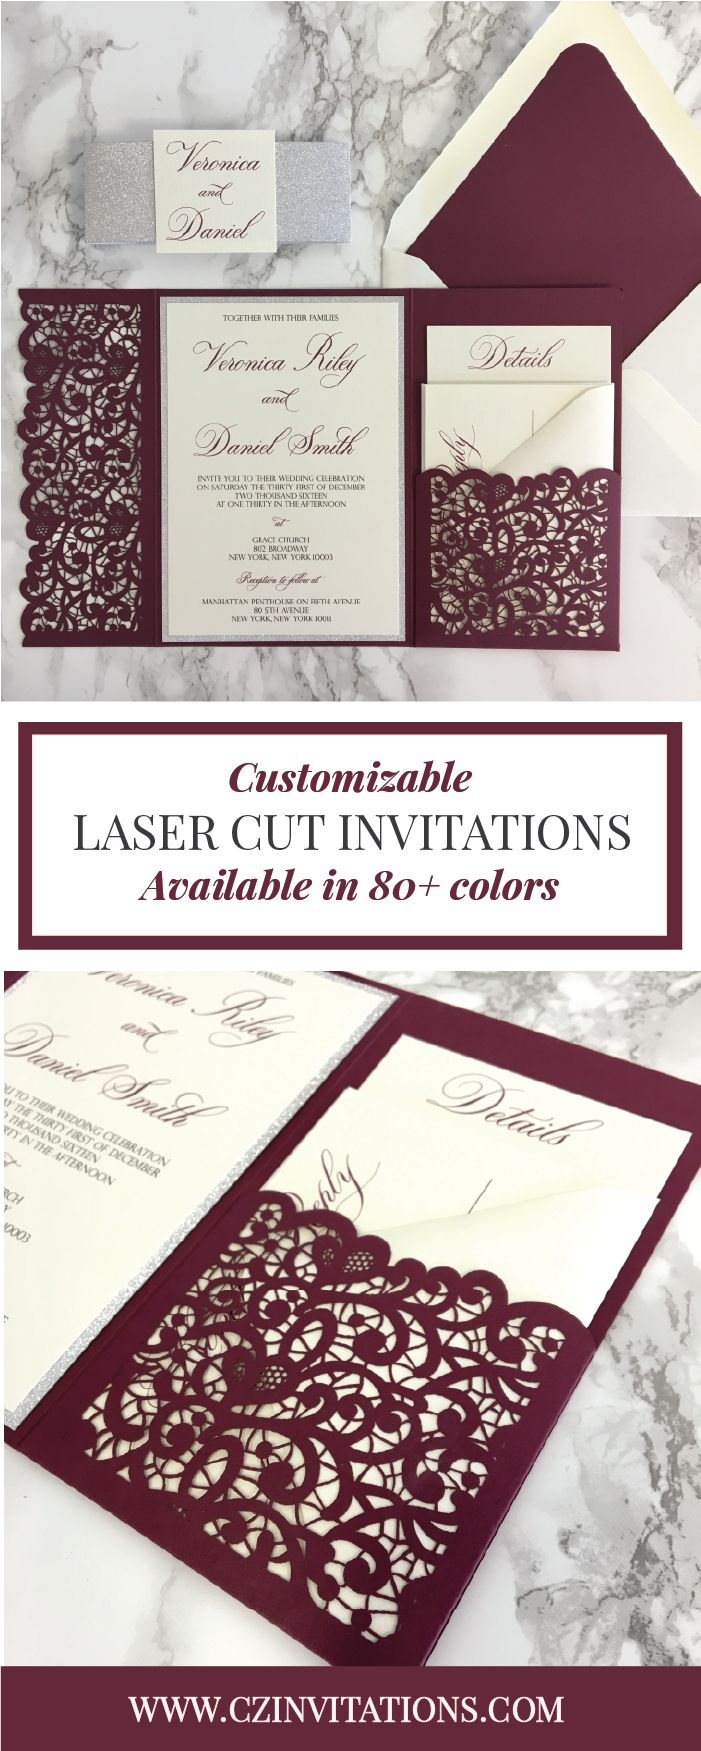 1378 Best Wedding Invitation Images On Pinterest Invitation Cards